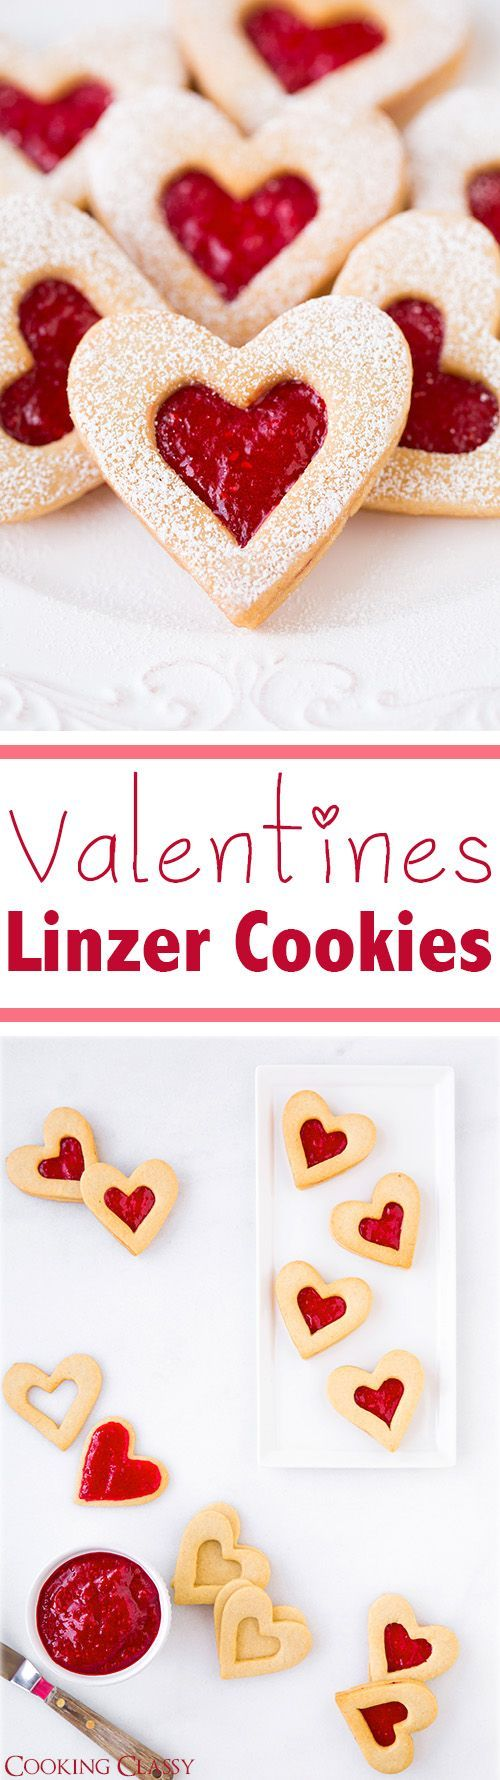 valentines meal and more linzer cookies cookies valentines valentine ...